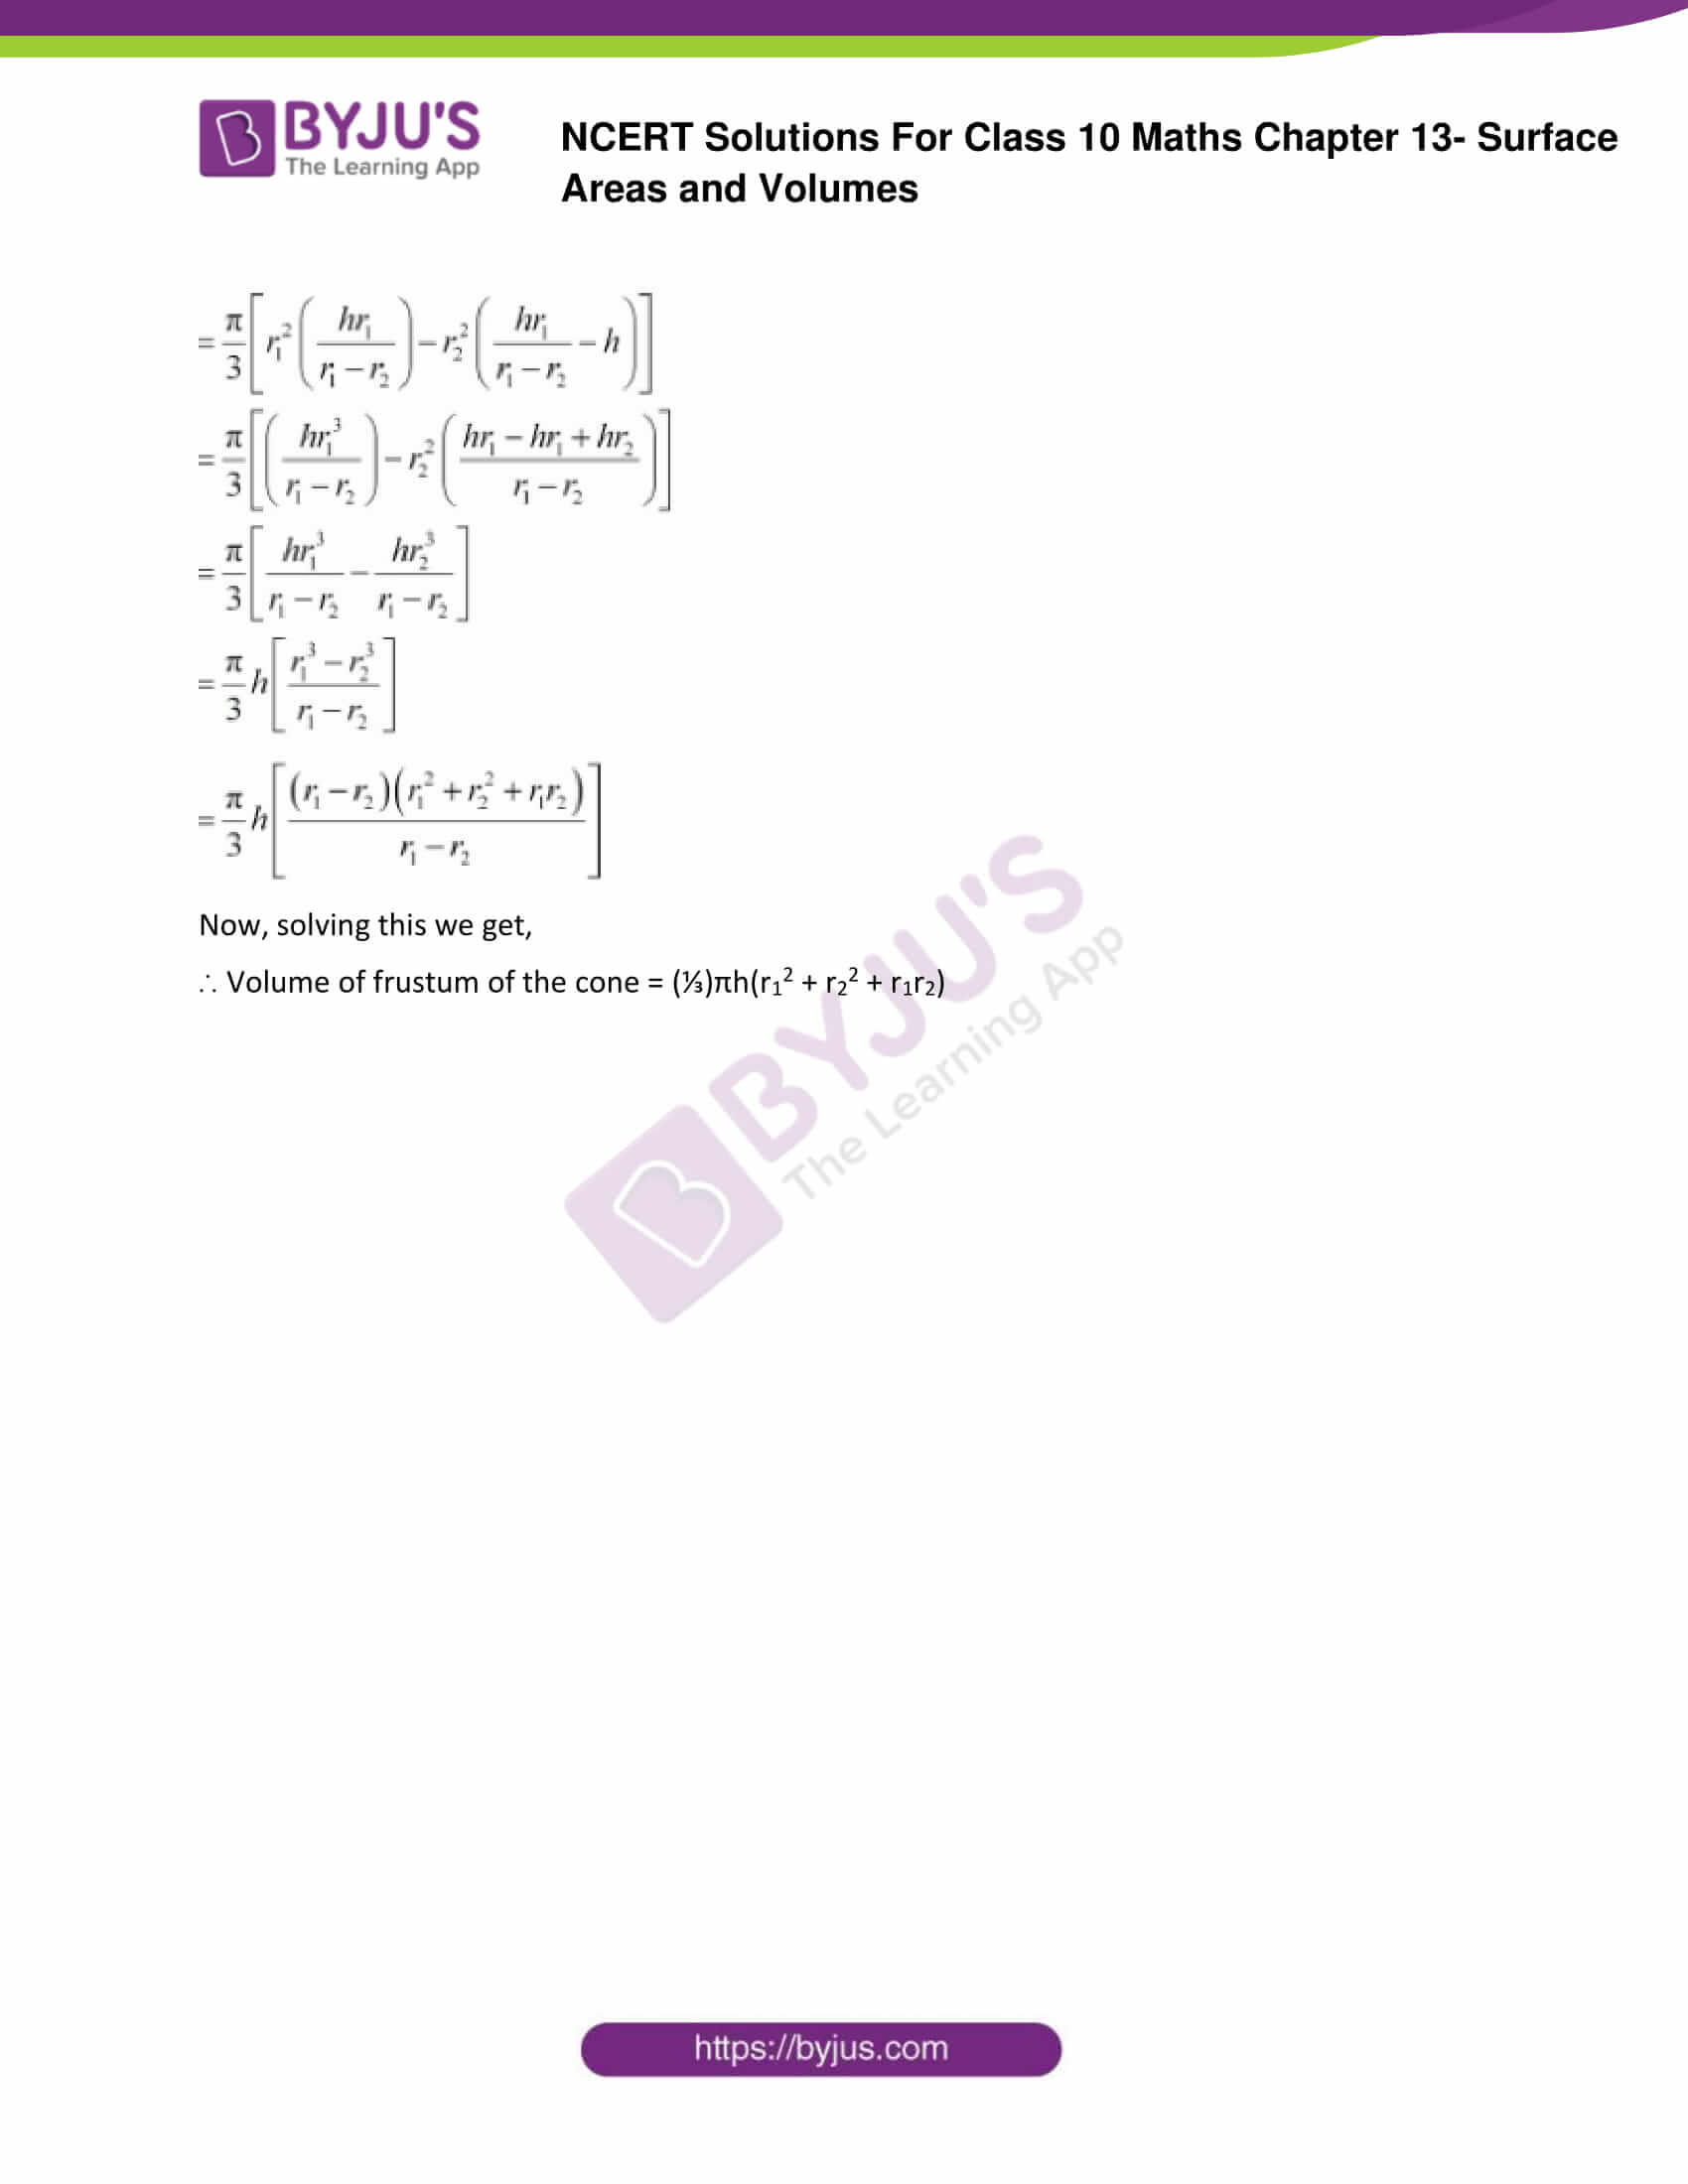 NCERT Solutions Class 10 Maths Chapter 13 Surface Areas and Volumes Part 31